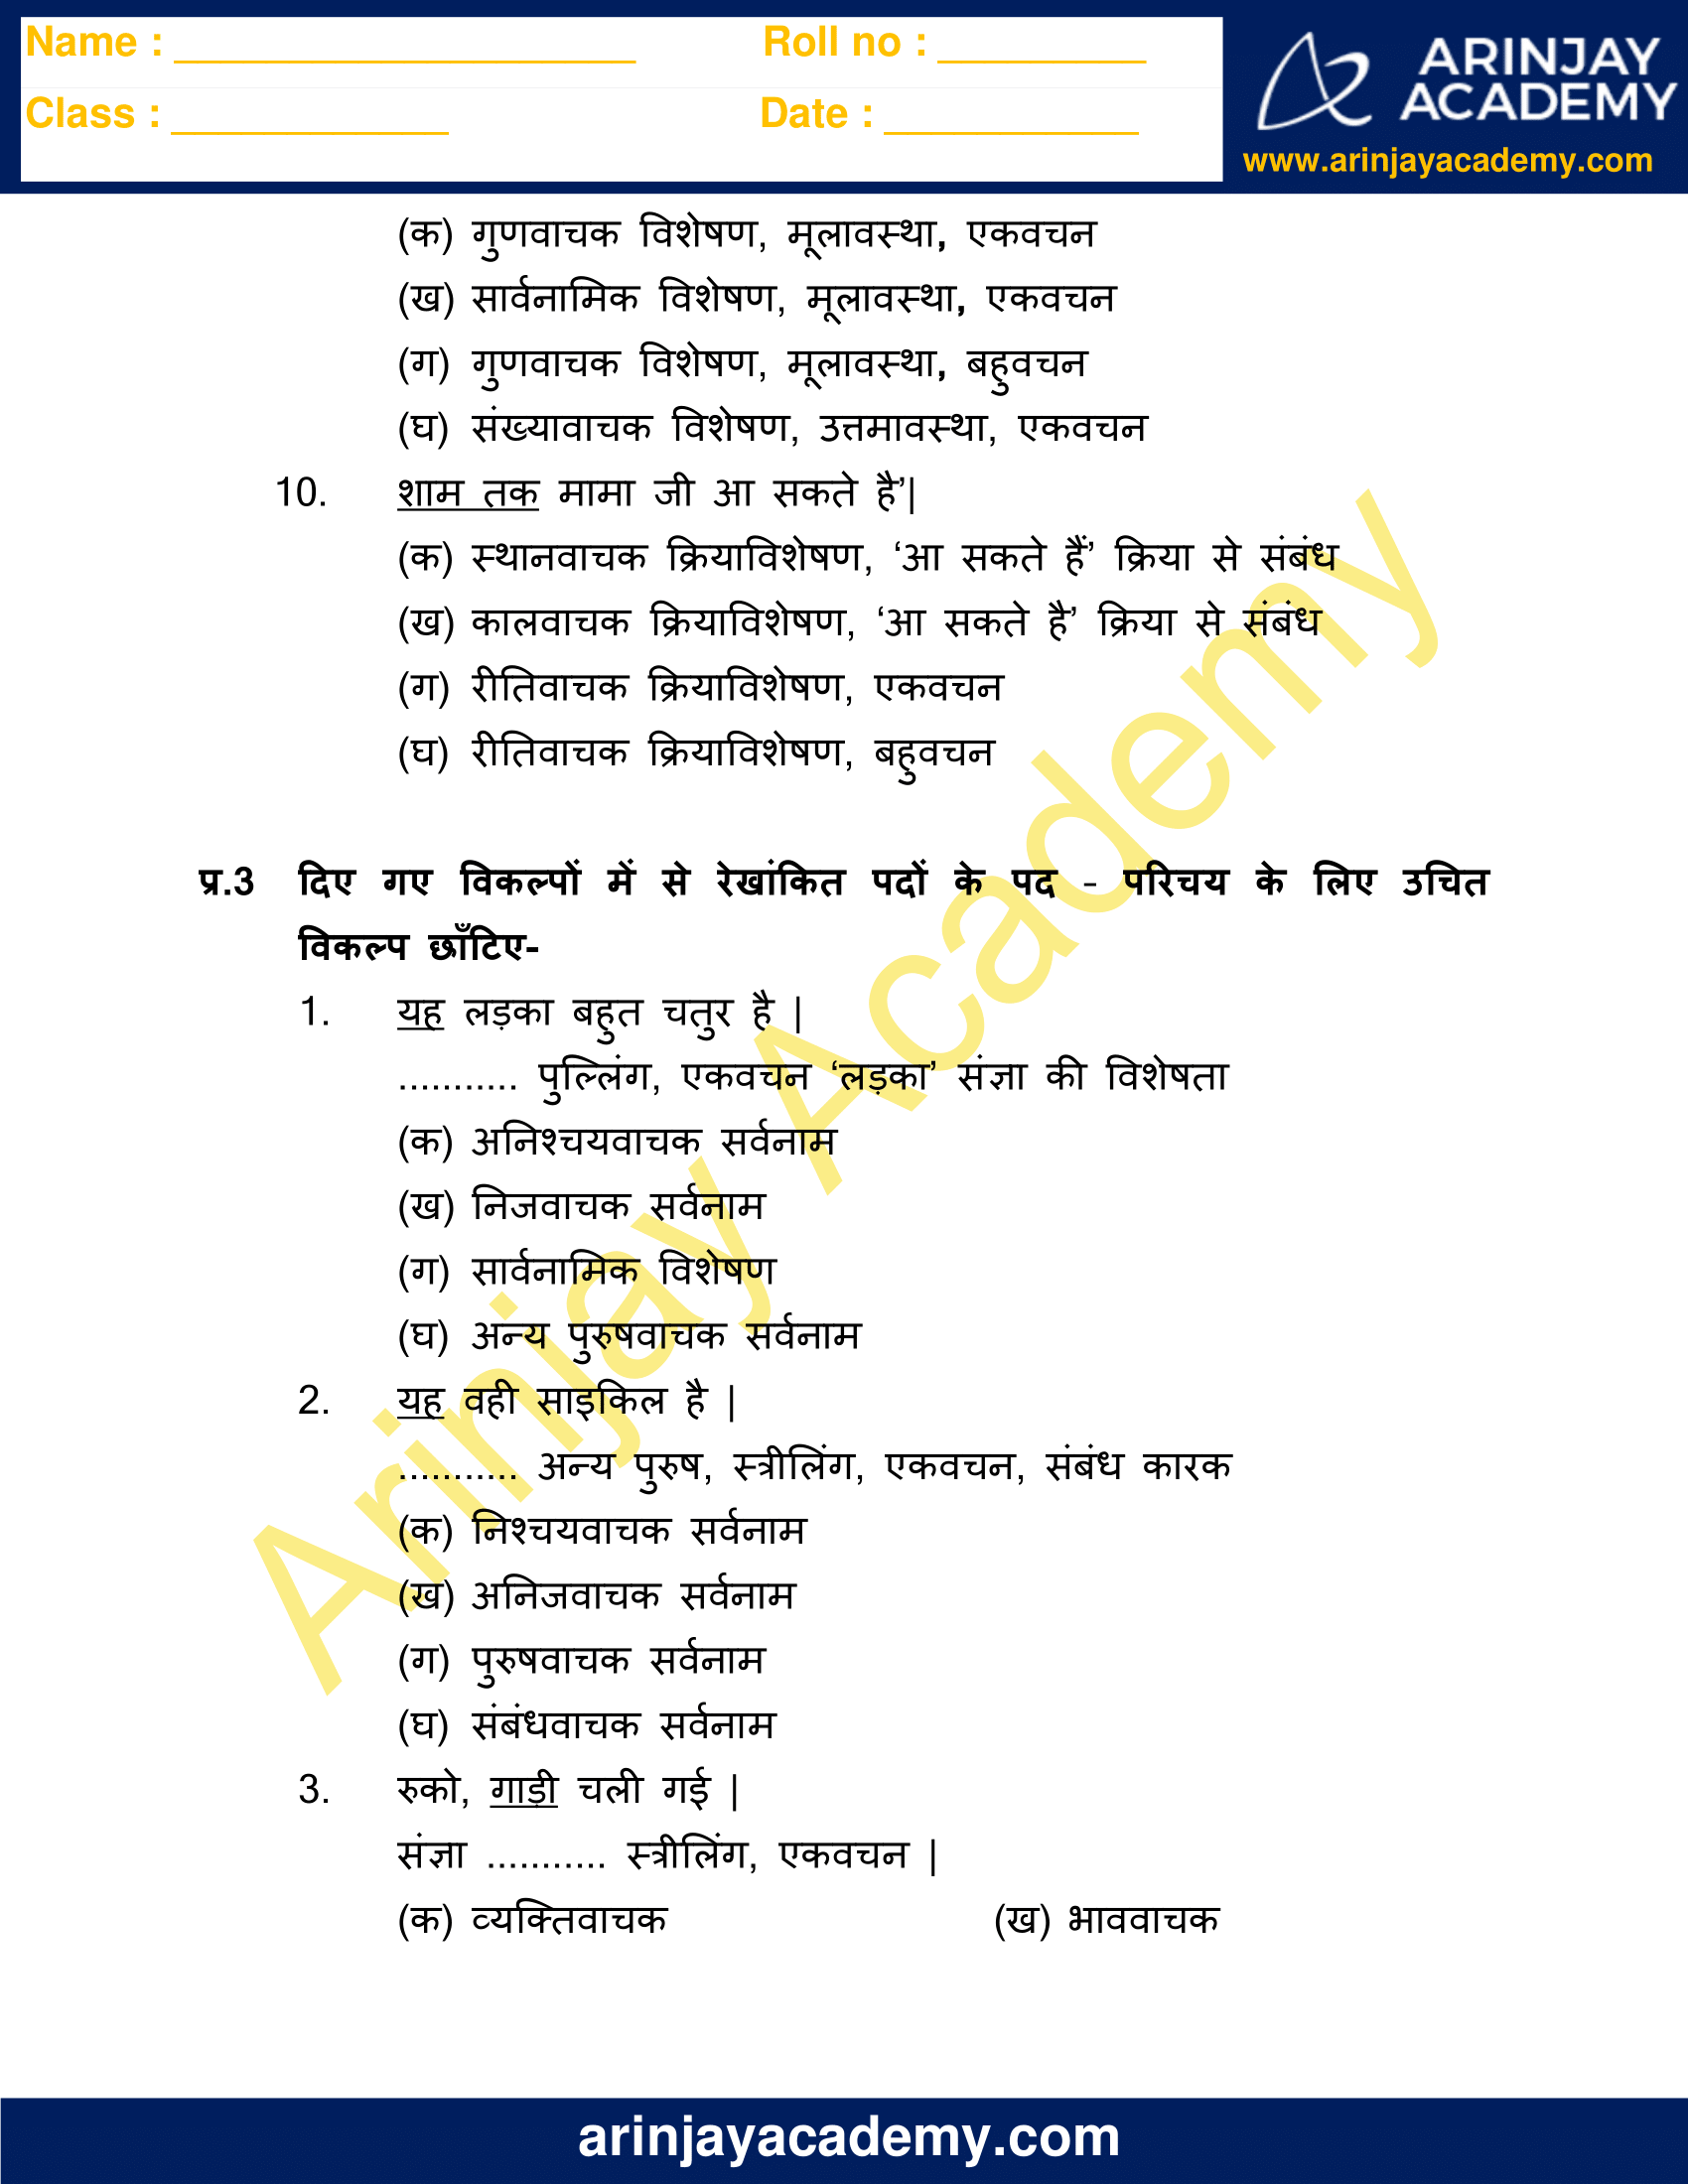 Pad Parichay Exercises with Answers Class 10 image 4